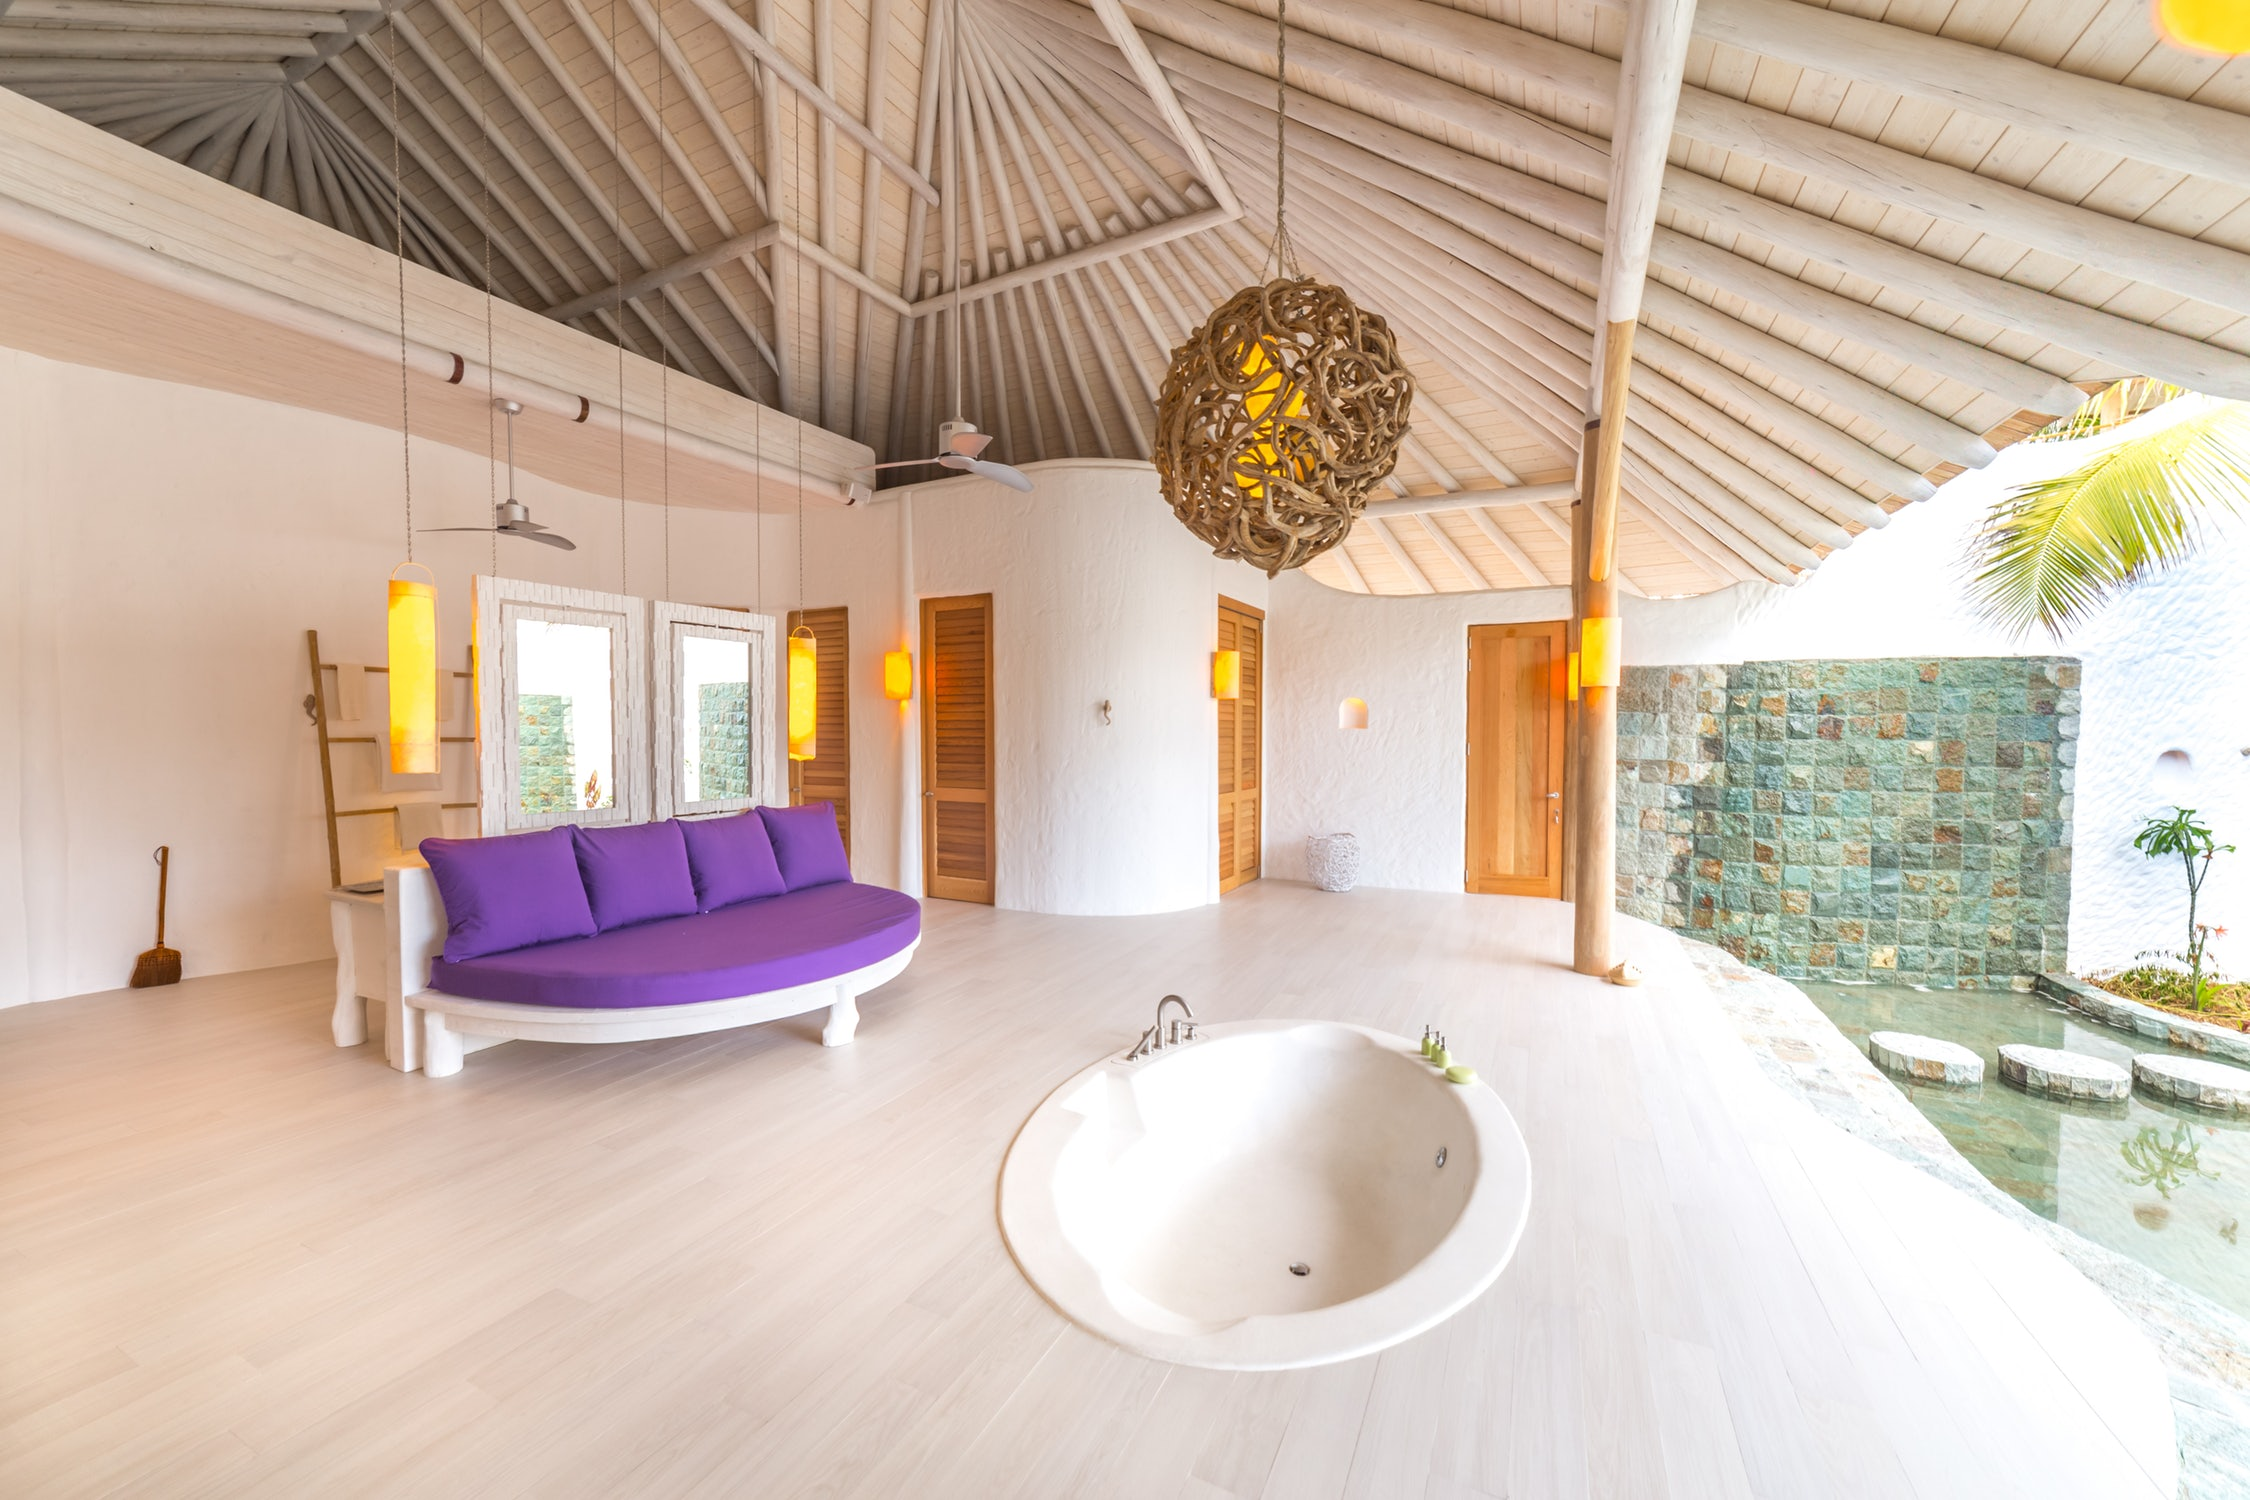 soneva jani 3 bedroom island reserve bath view